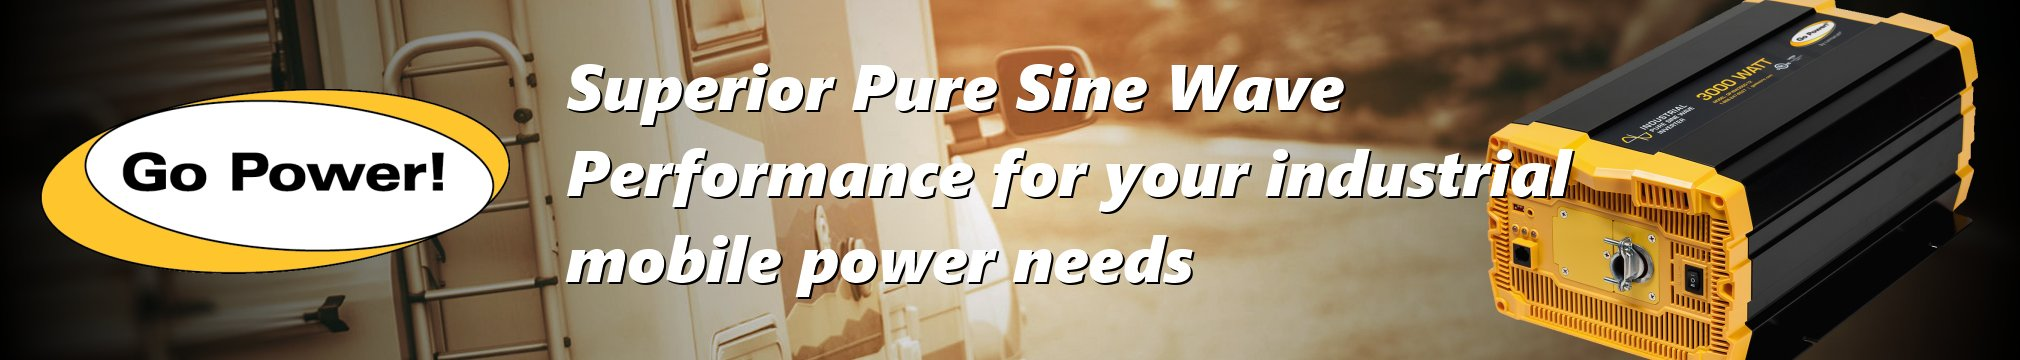 Go Power! Pure Sine Wave industrial mobile inverters, DC-to-AC power for your mobile power needs!